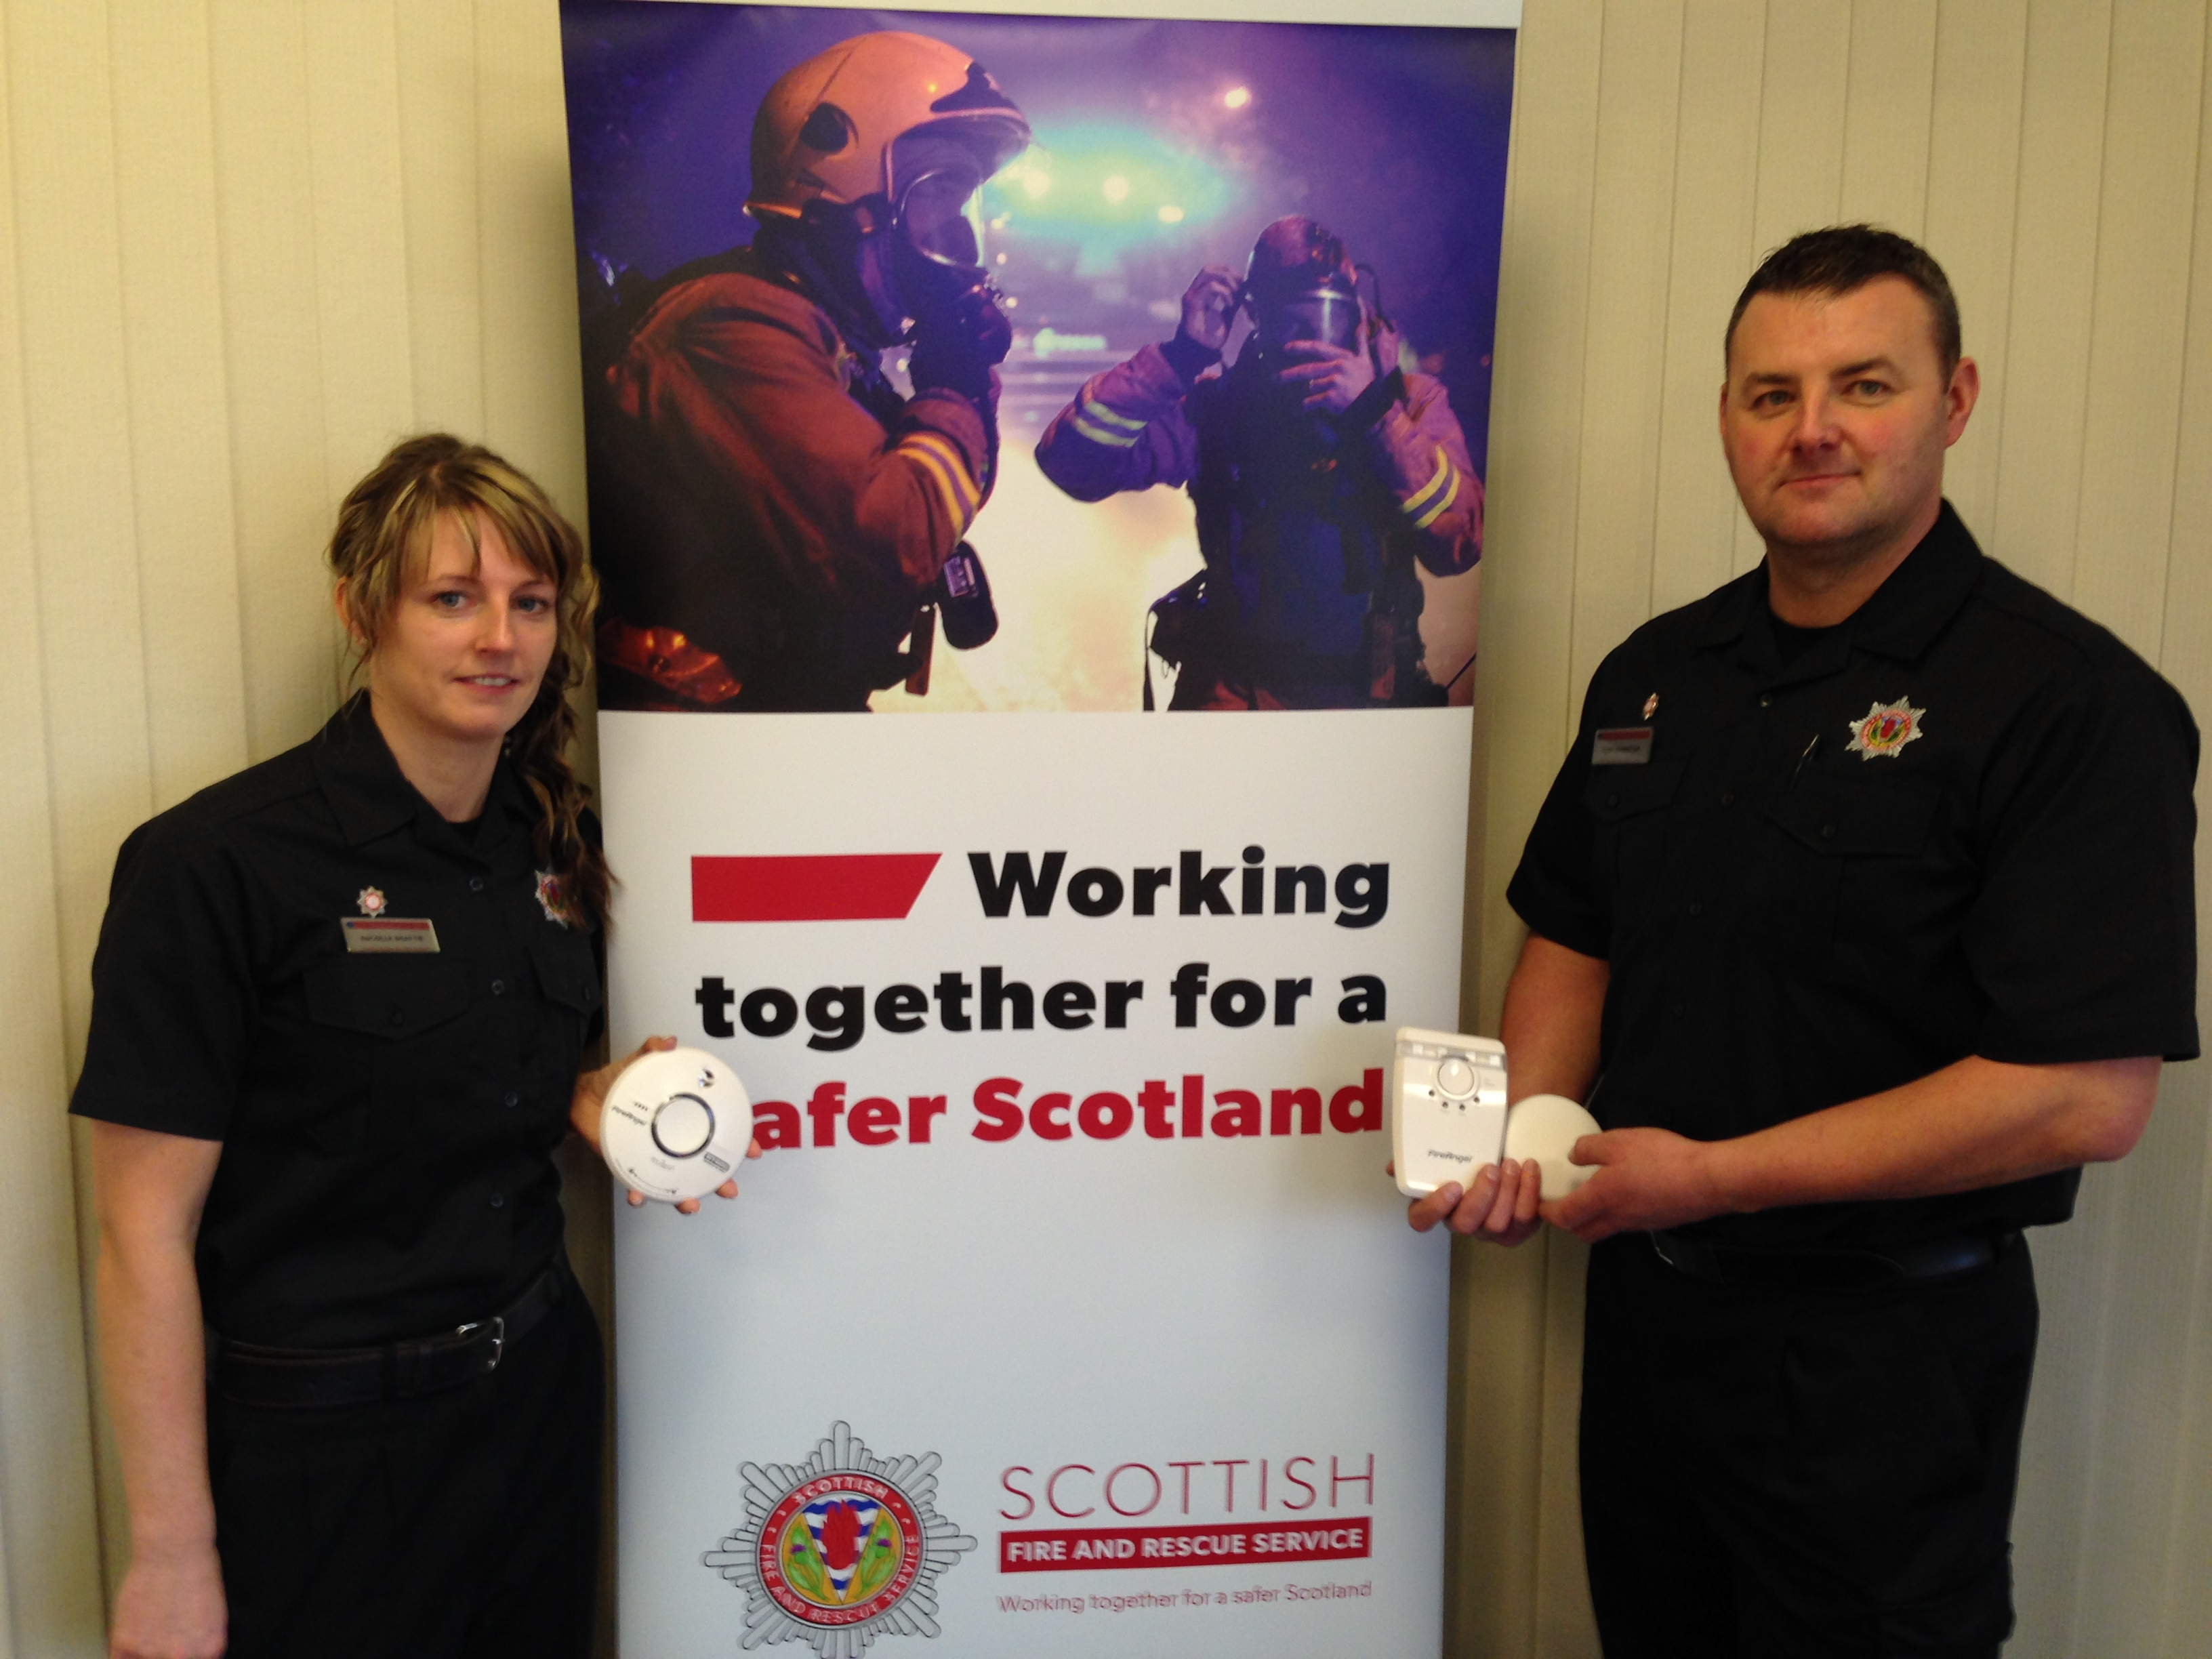 Perth and Kinross Scrutiny Committee - reduction in fires